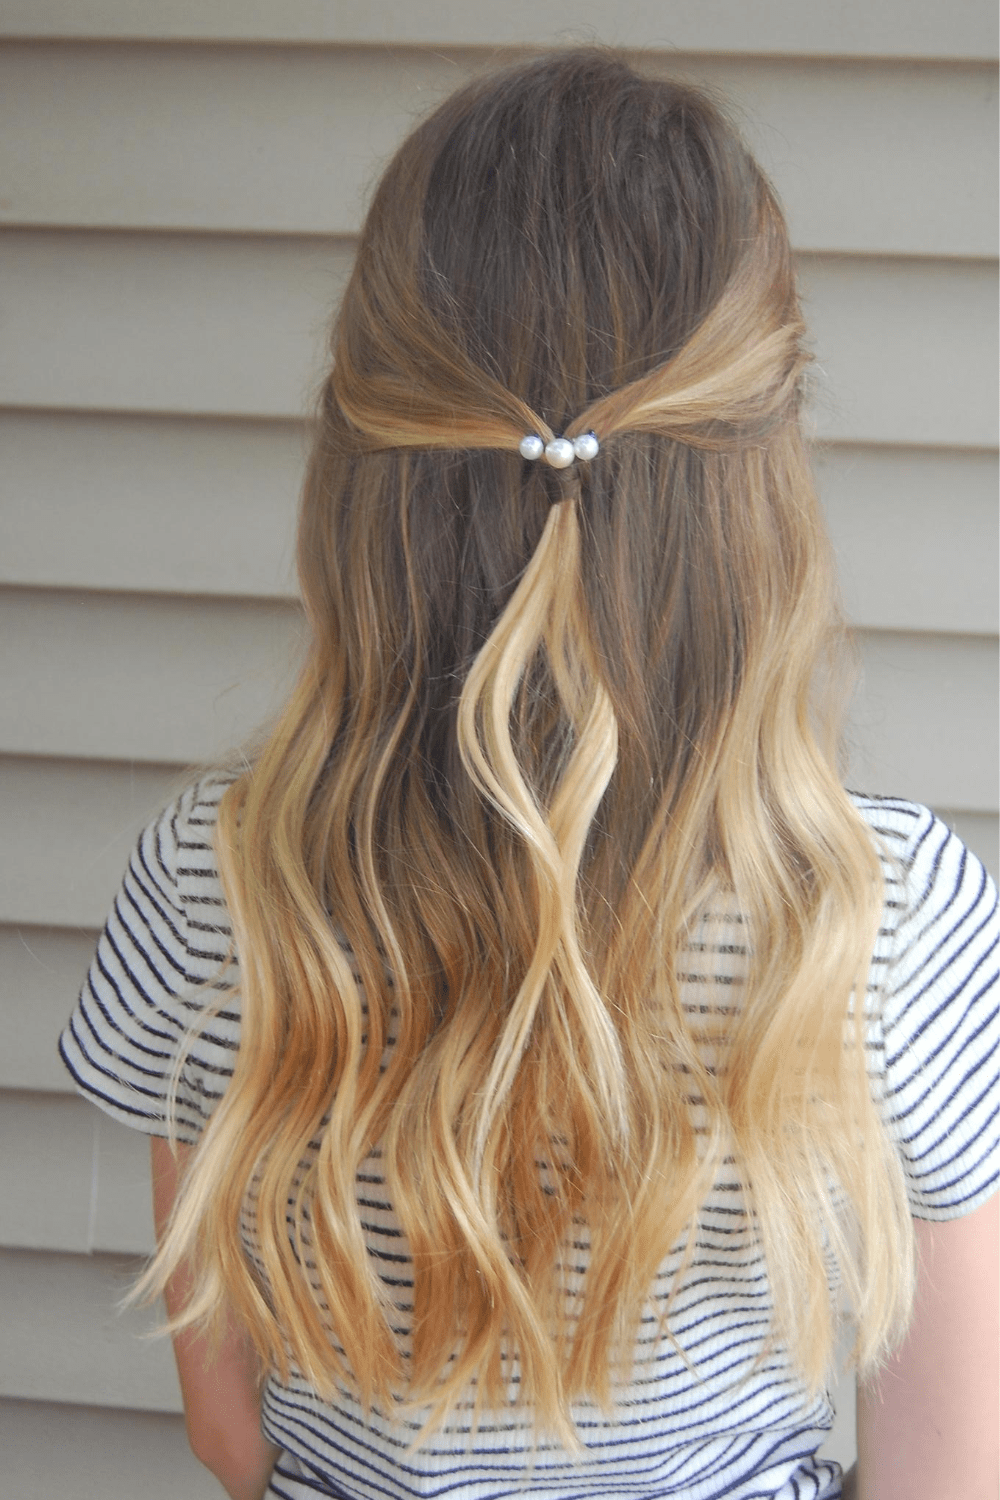 Hairstyle with pearl bobby pins